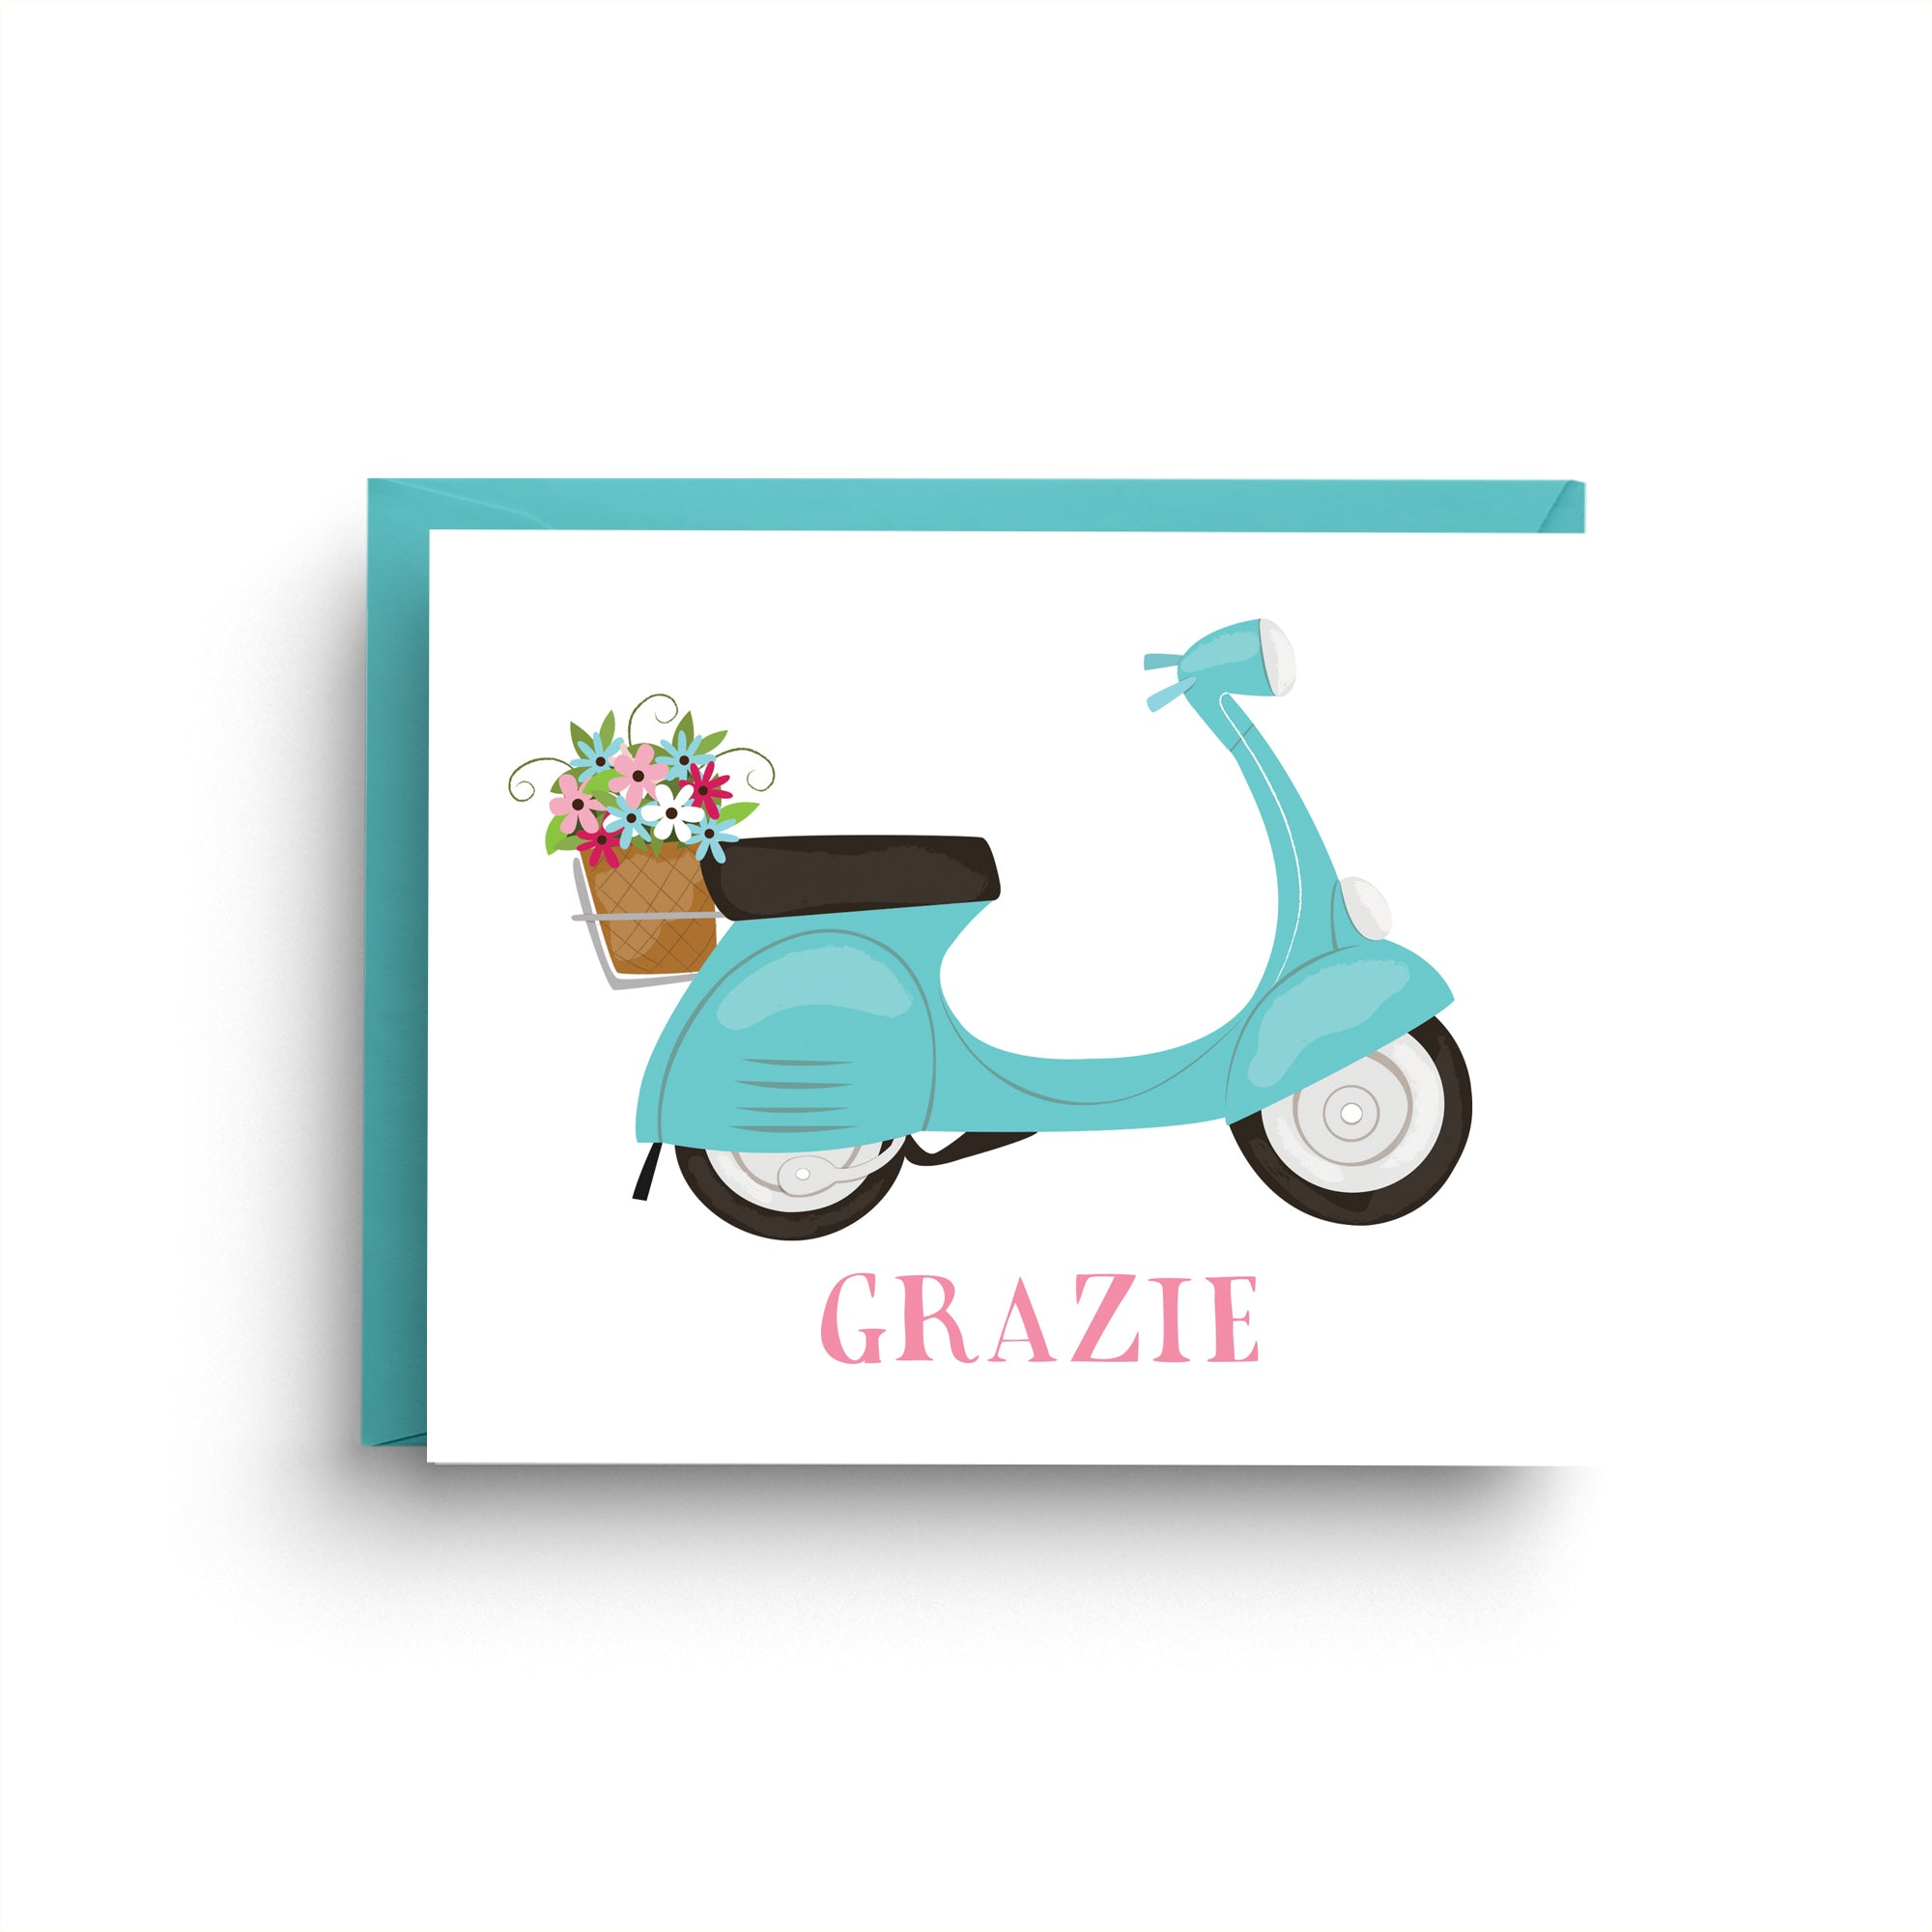 vespa stationery, scooter card, boxed set of cards, vespa card, Italian wedding, thank you card, wedding card, Italian stationery, Italian card, scooter, spring card, grazie card, blue vespa